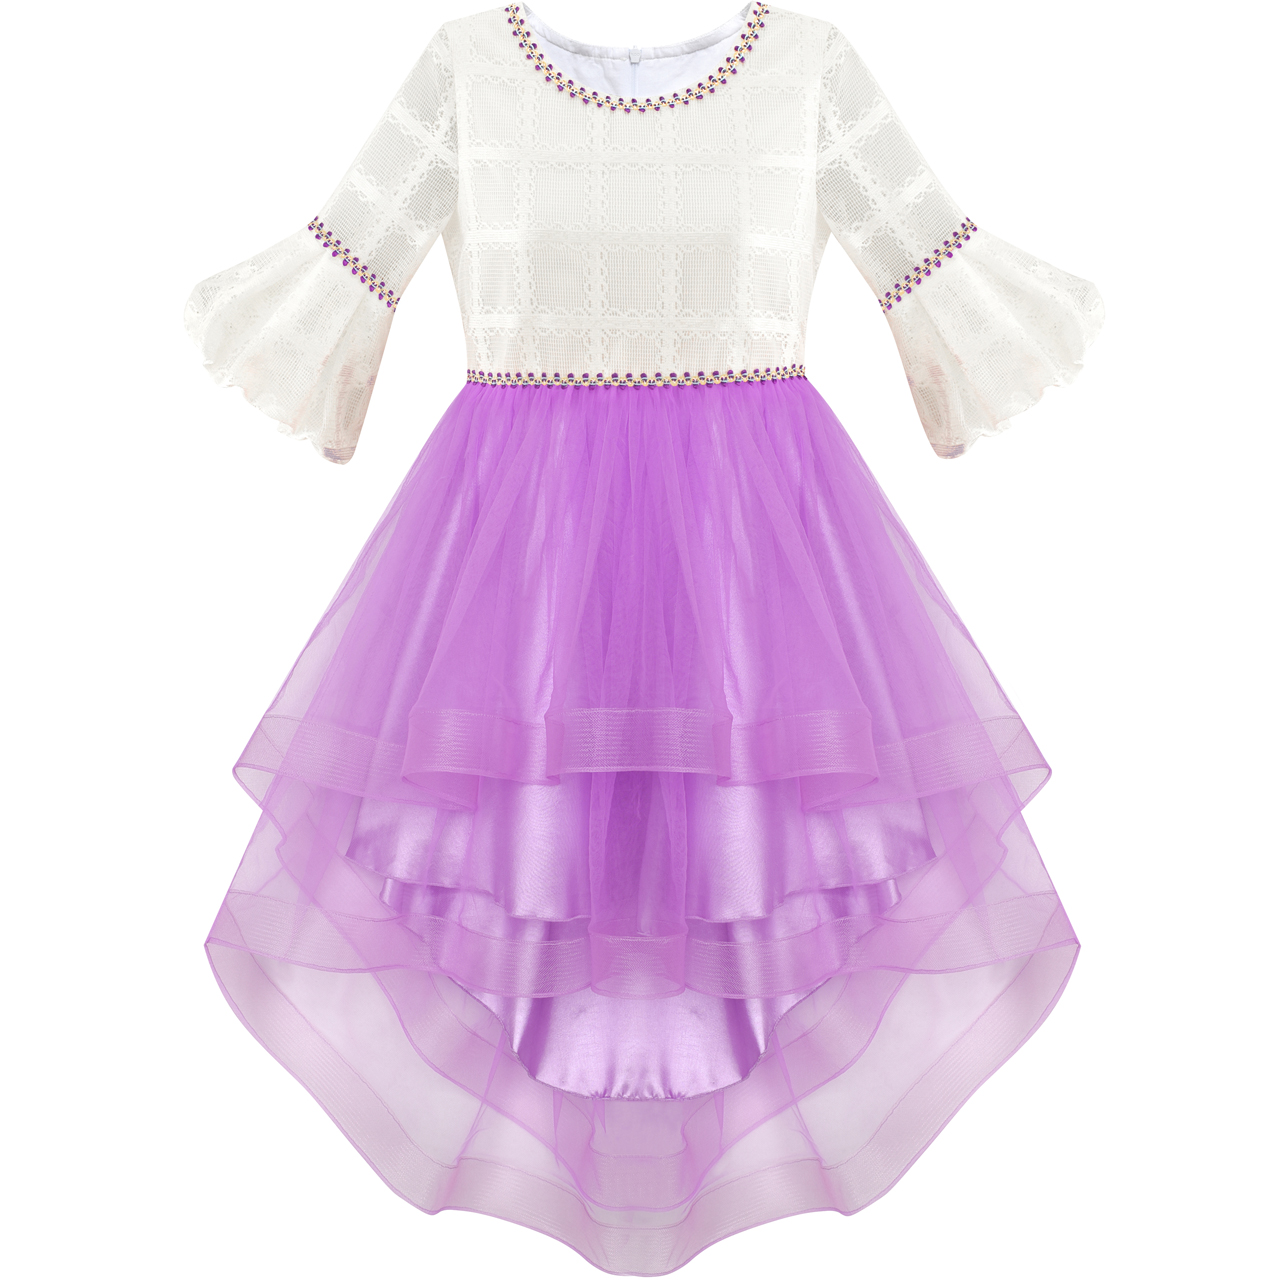 Cheap Wedding Dresses Raleigh Nc: Aliexpress.com : Buy Flower Girl Dress White And Purple Hi